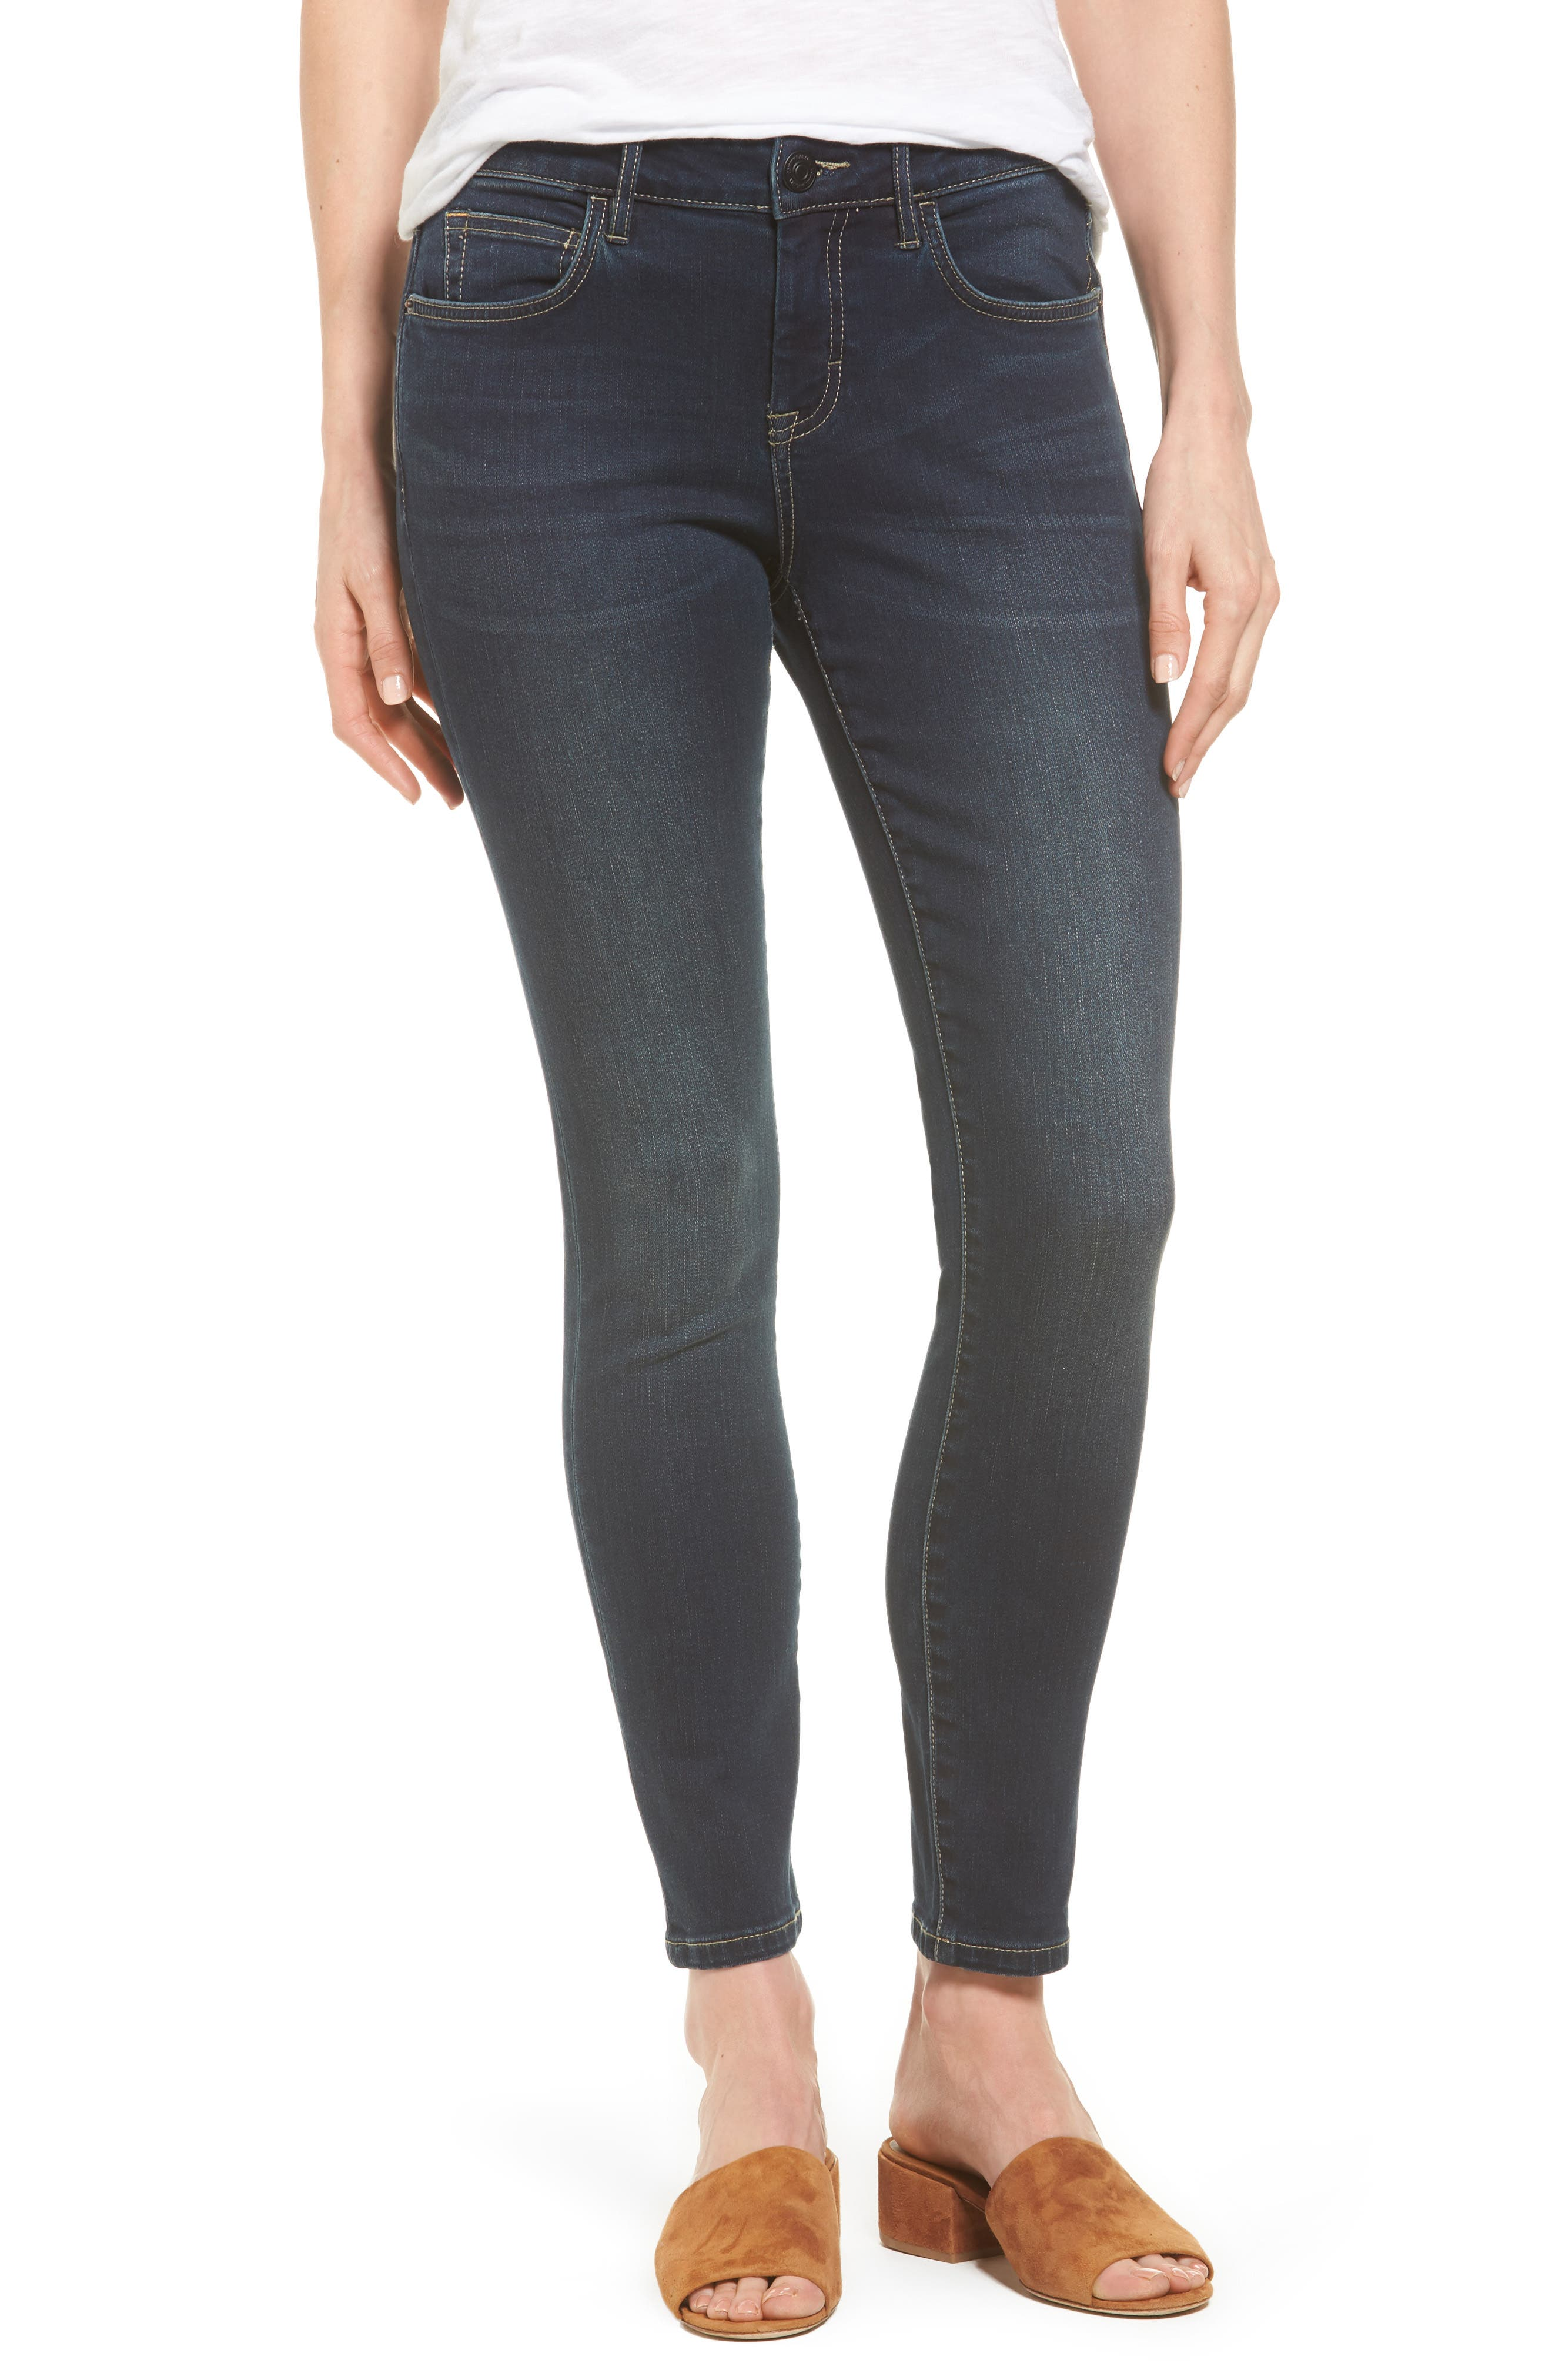 TOMMY BAHAMA Tema Stretch Skinny Jeans, Main, color, DARK OCEAN WASH